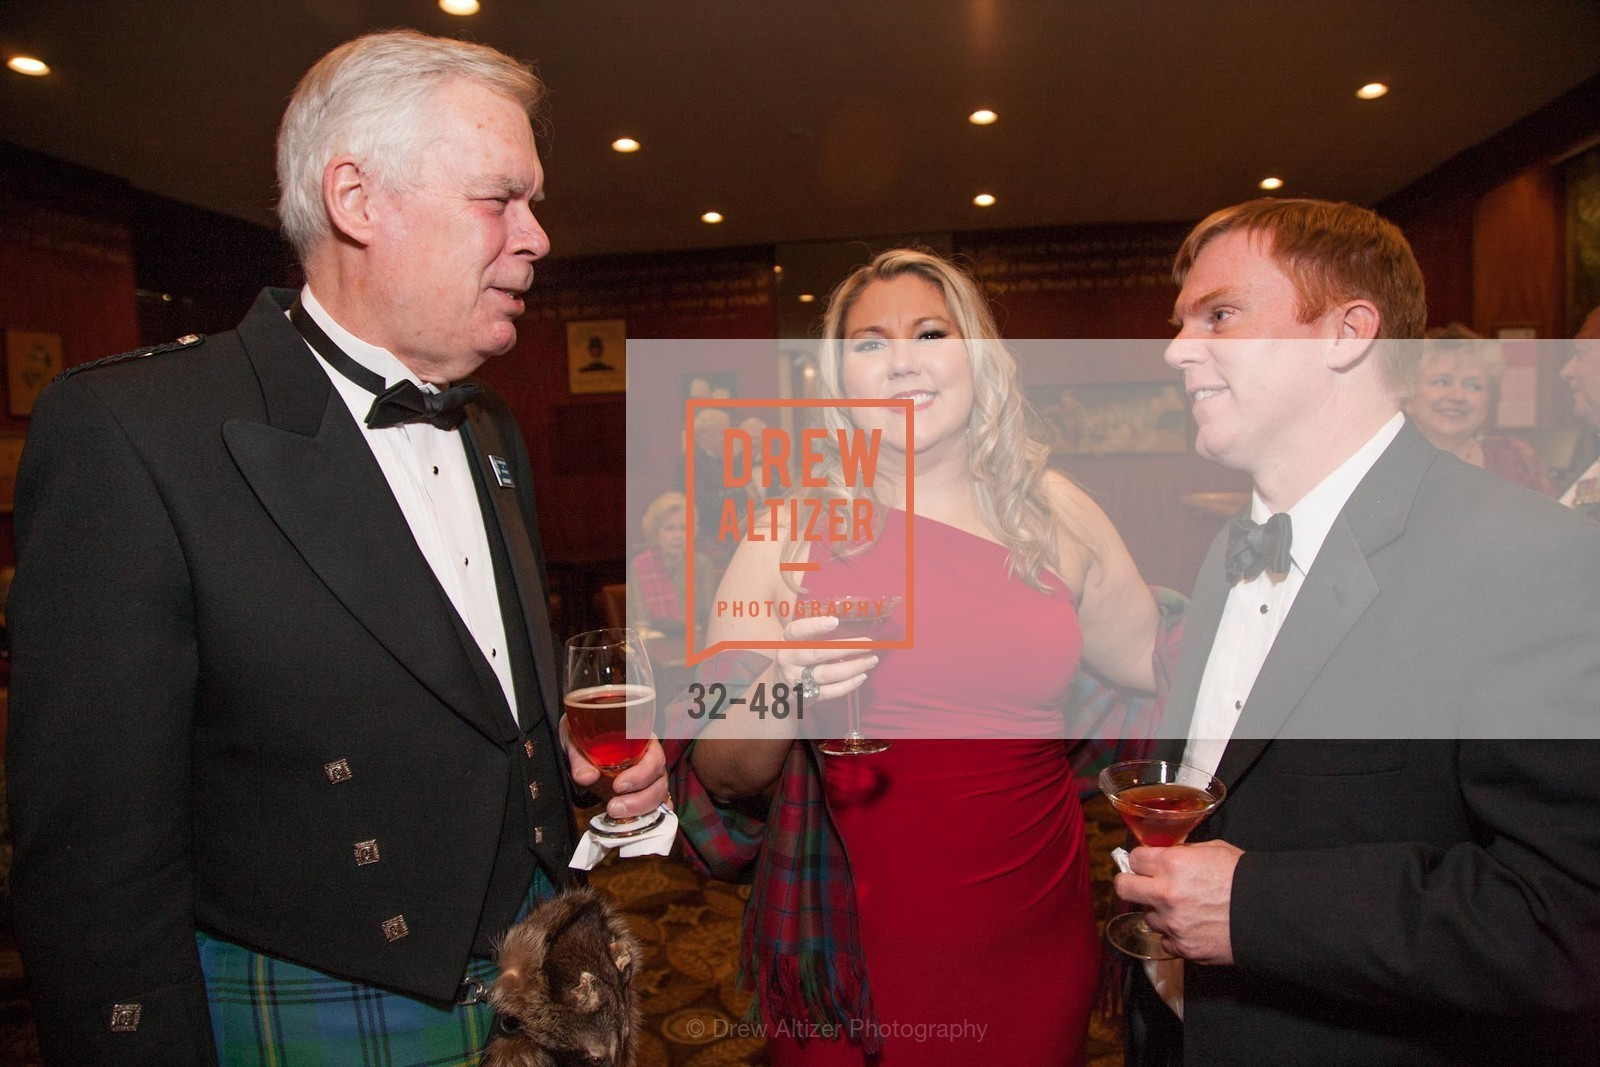 Kent Walker, Lisa McCracken, Russell Hattig, ST. ANDREW'S SOCIETY OF SAN FRANCISCO'S Traditional Burns Night Supper 2014, US. US, January 25th, 2014,Drew Altizer, Drew Altizer Photography, full-service agency, private events, San Francisco photographer, photographer california